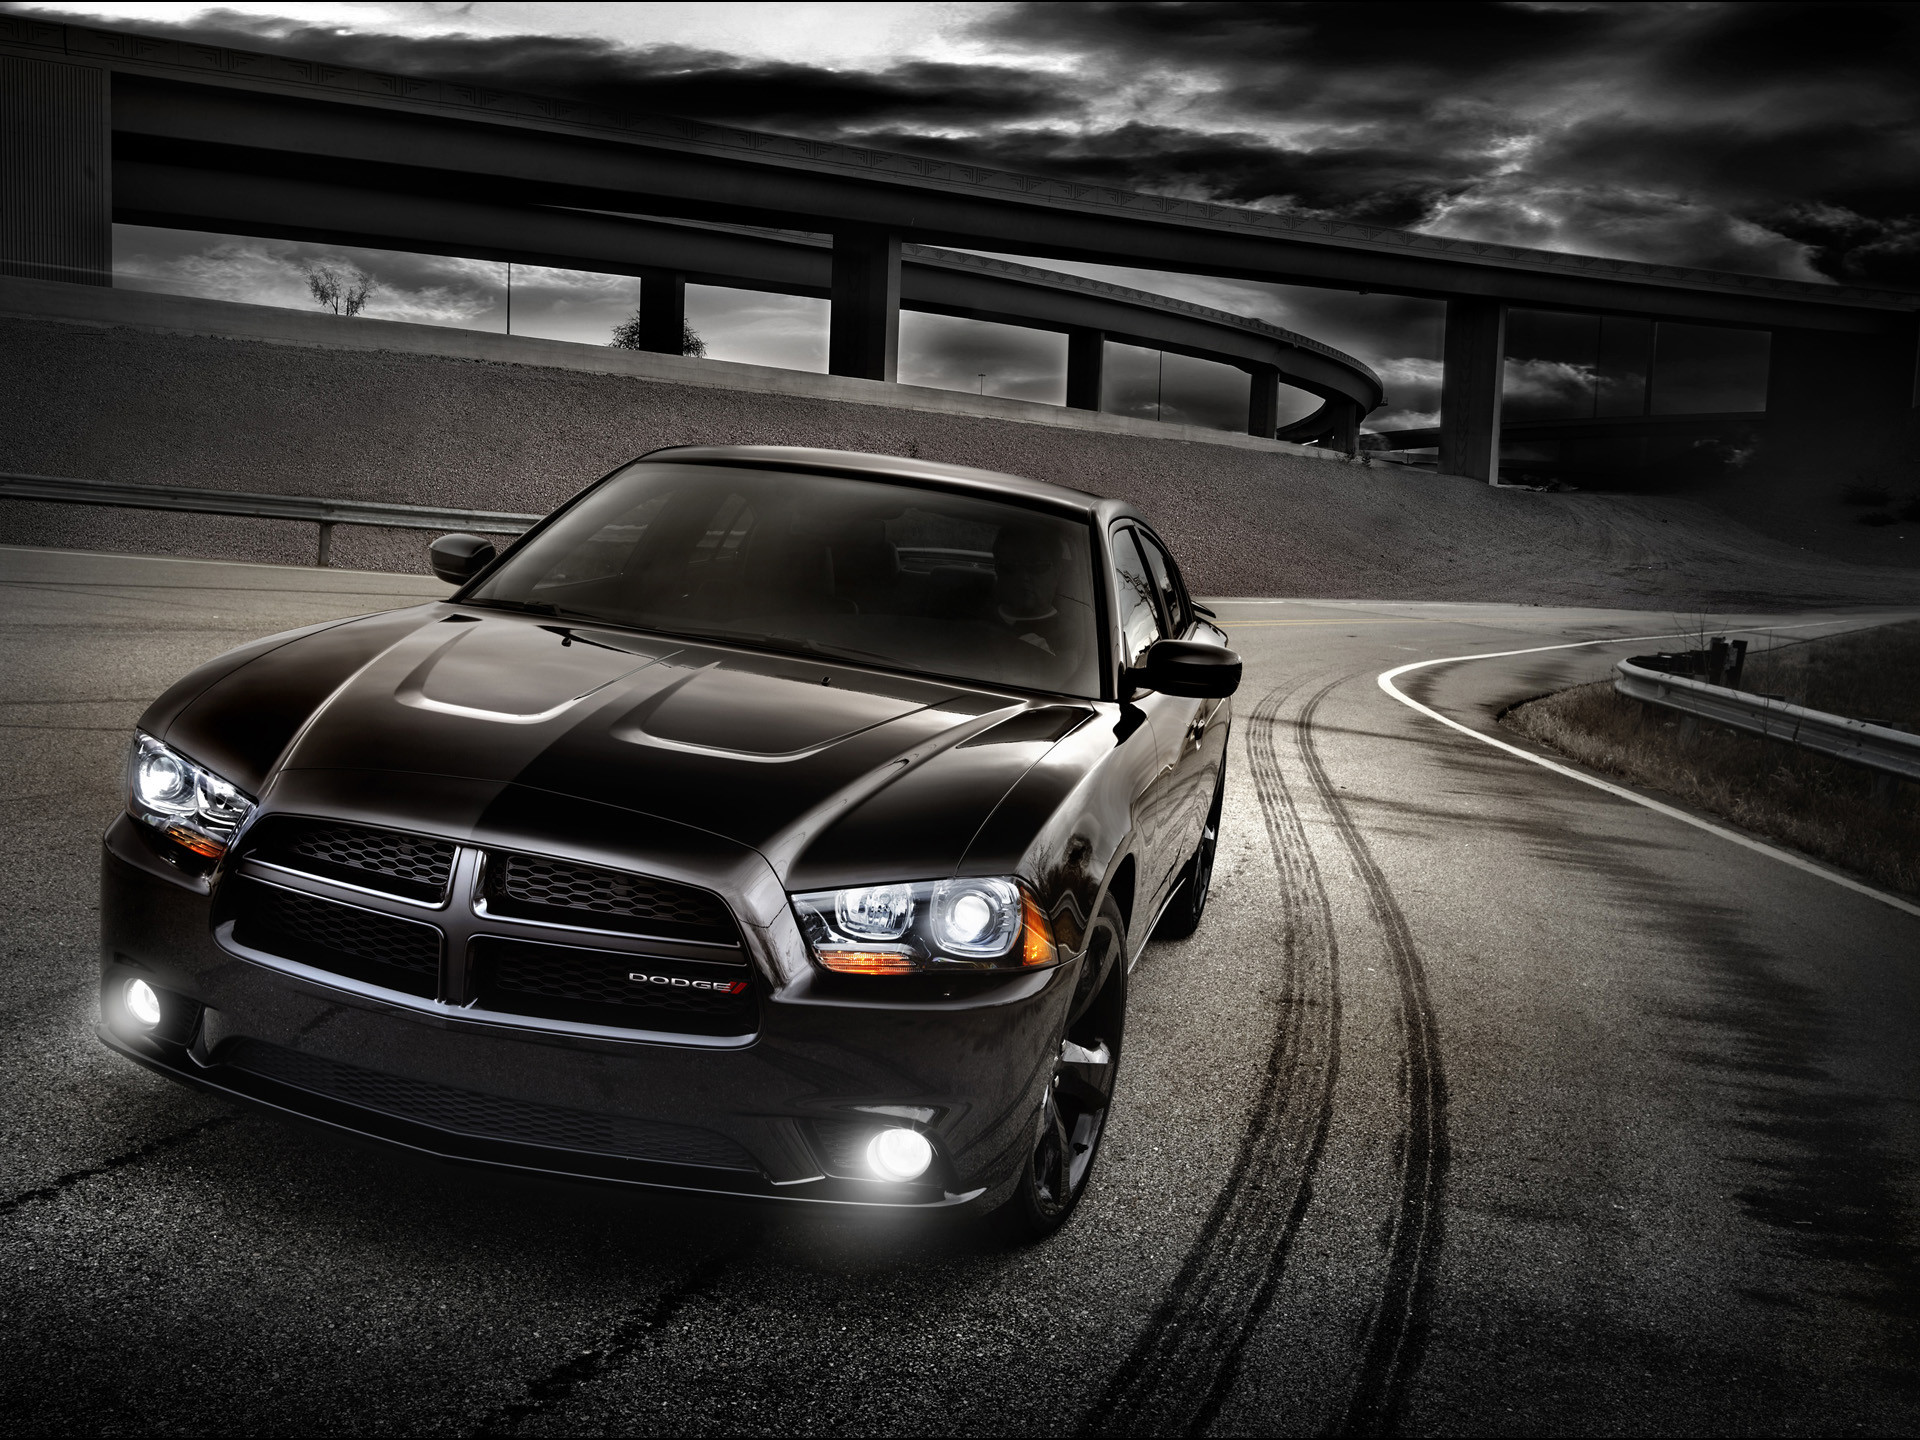 1920x1440 Black Dodge Charger Wallpaper 20203